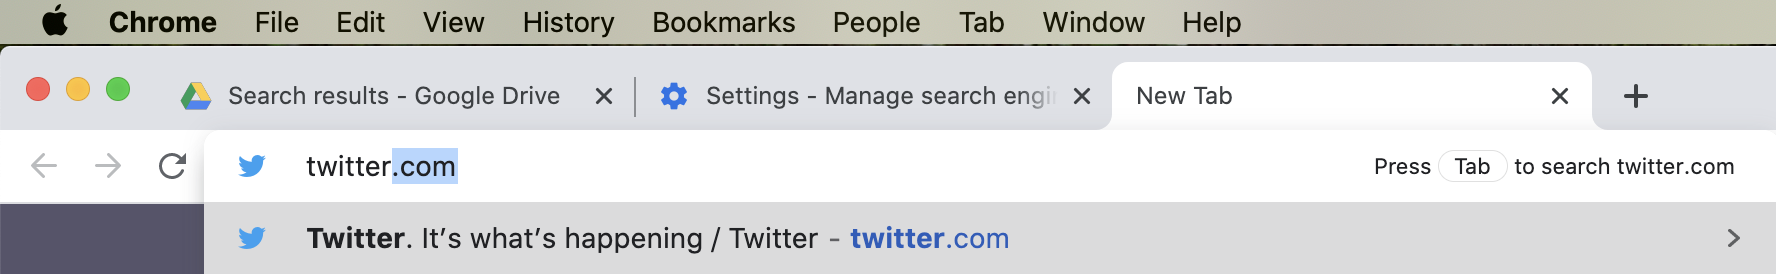 Searching Twitter from the Chrome address bar